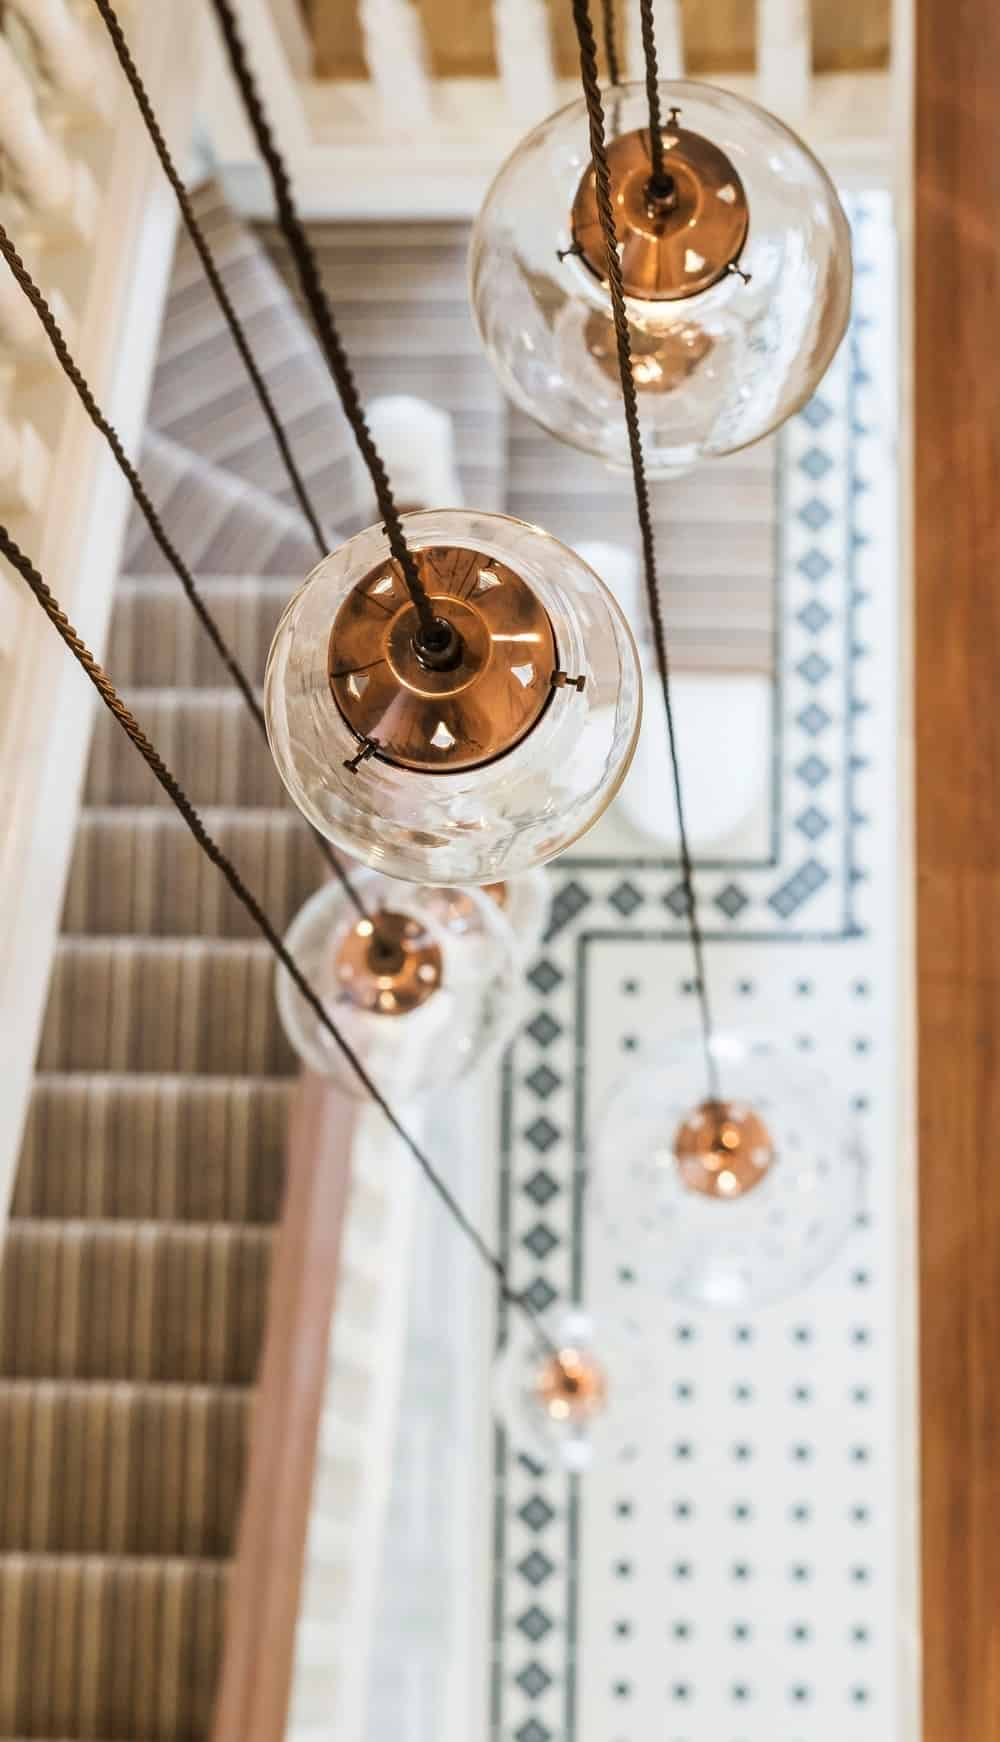 The entrance hall's staircase is lighted by a set of stylish pendant lights. Photo Credit: Rick Mccullagh